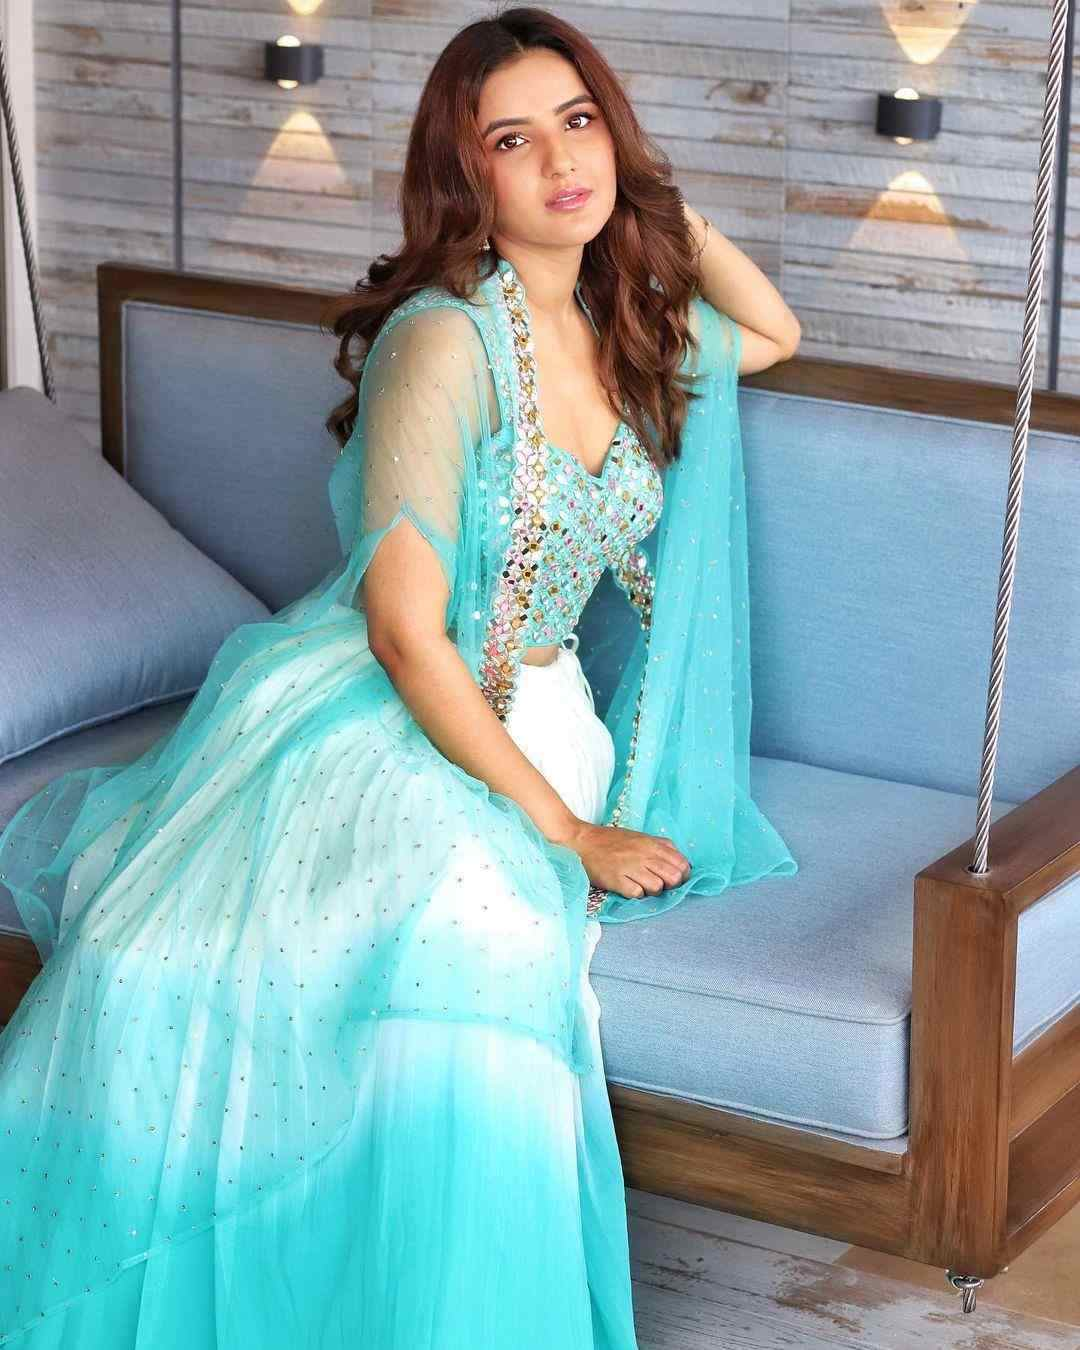 Alluring images of bollywood actress jasmin bhasin-Telugu Actress Jasmin Bhasin, Alluring Images Of Bollywood Actress Jasmin Bhasin, Images, Jasmin Bhasin, Jasmin Bhasin Latest Images, Jasmin Bhasin Latest Photos, Jasmin Bhasin Latest Telugu News, Jasmin Bhasin Measurements, Jasmin Bhasin News, Jasmin Bhasin Photo Download, Jasmin Bhasin Photo Hd, Jasmin Bhasin Photos, Jasmin Bhasin Photos Instagram, Jasmin Bhasin Pictures, Tv Show Actress Jasmin Bhasin Glamorous Images Photos,Spicy Hot Pics,Images,High Resolution WallPapers Download